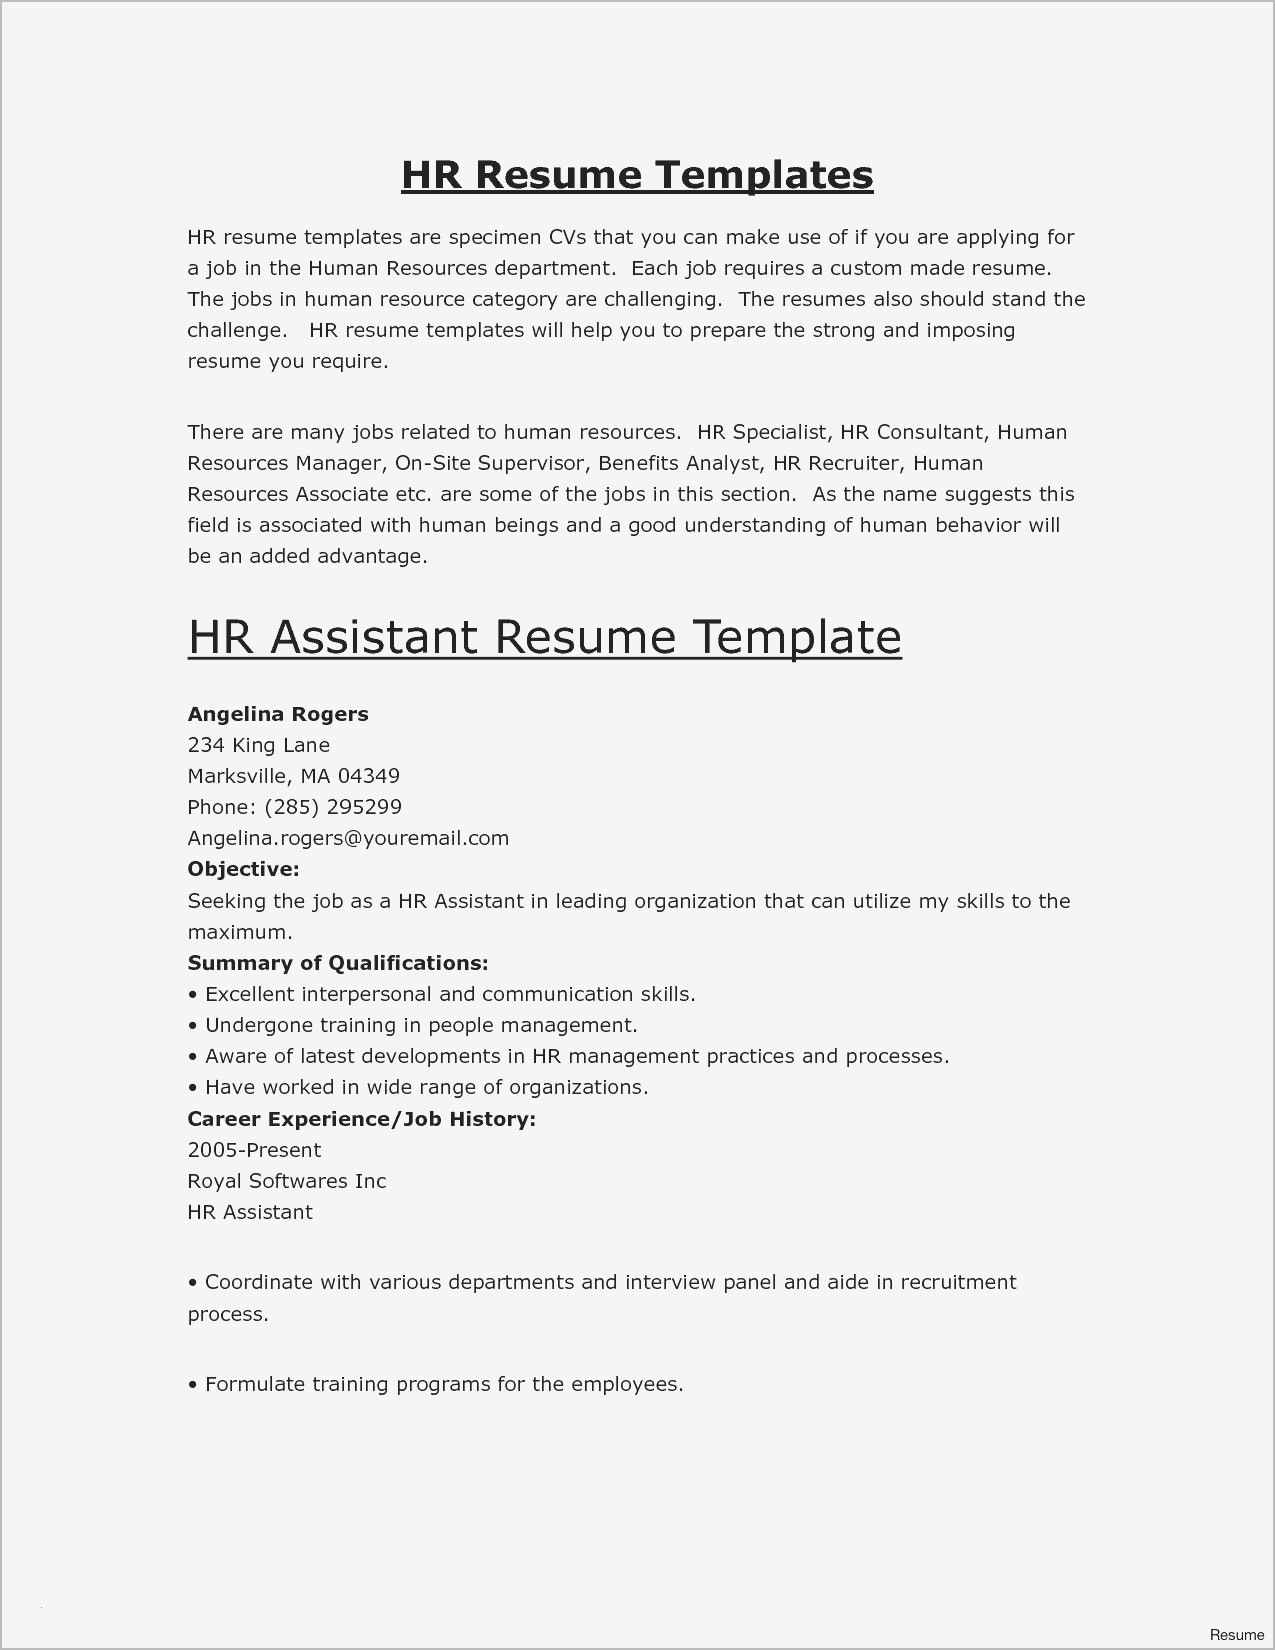 Outside Sales Rep Resume - Medical Sales Resume Medical Sales Resume Sample Medical Sales